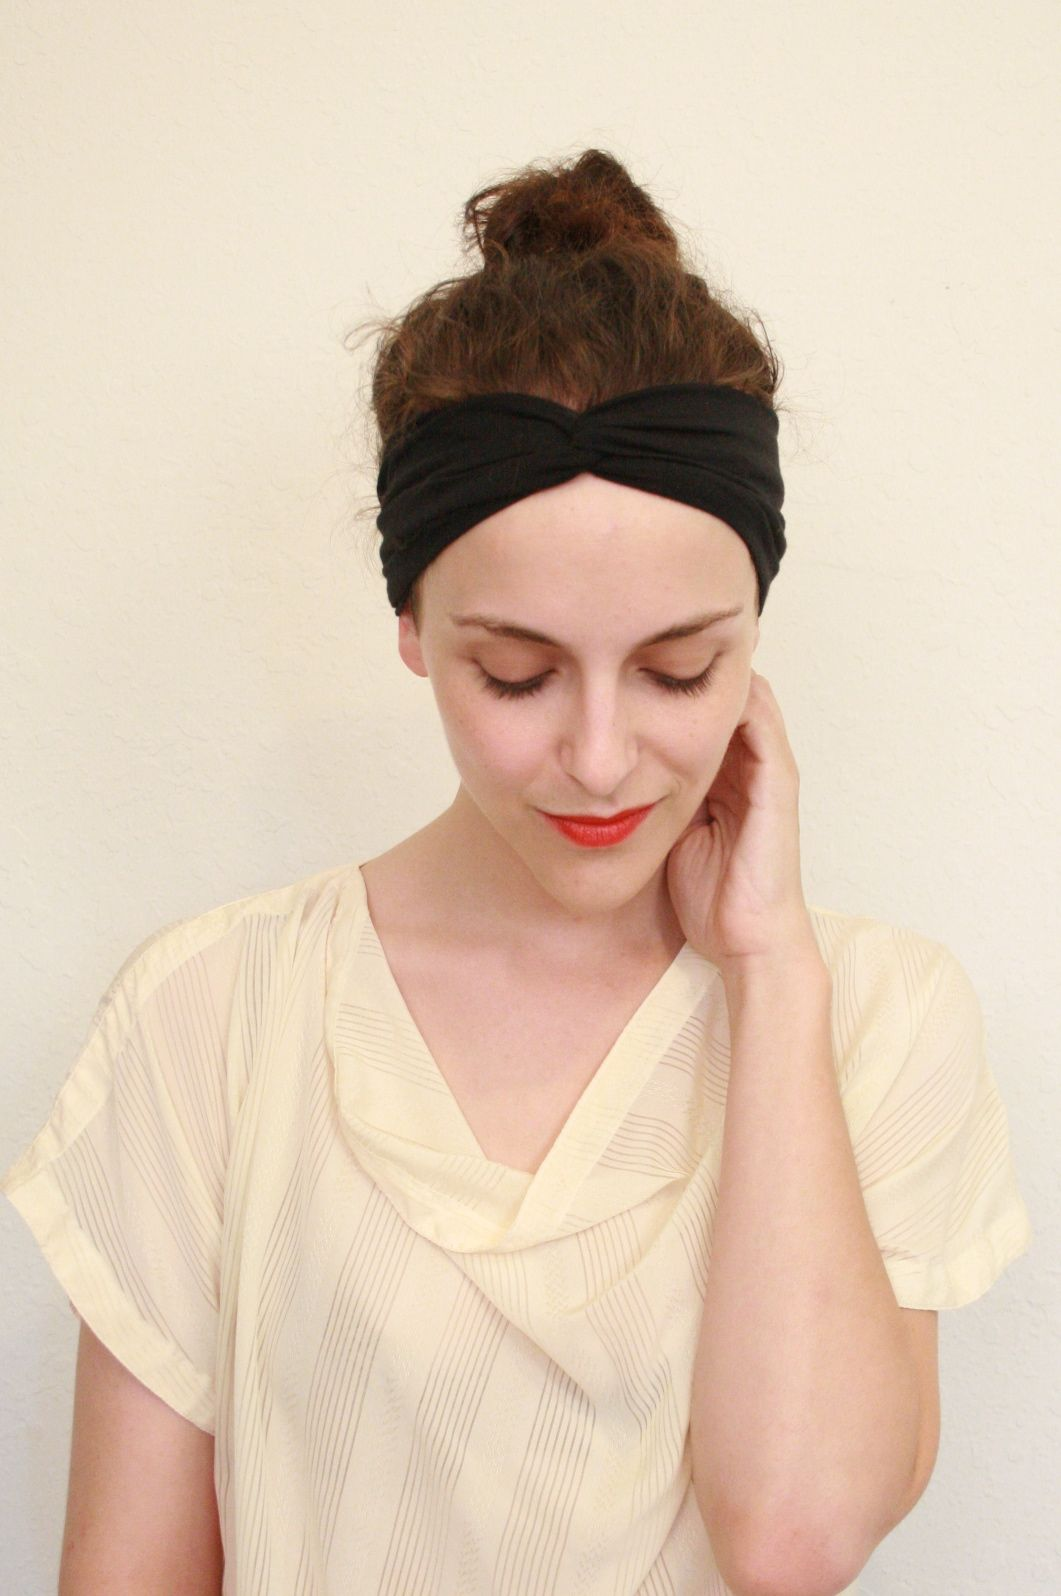 Twitch vintage turban headband tutorial made from elastic twitch vintage turban headband tutorial made from elastic headbands baditri Images